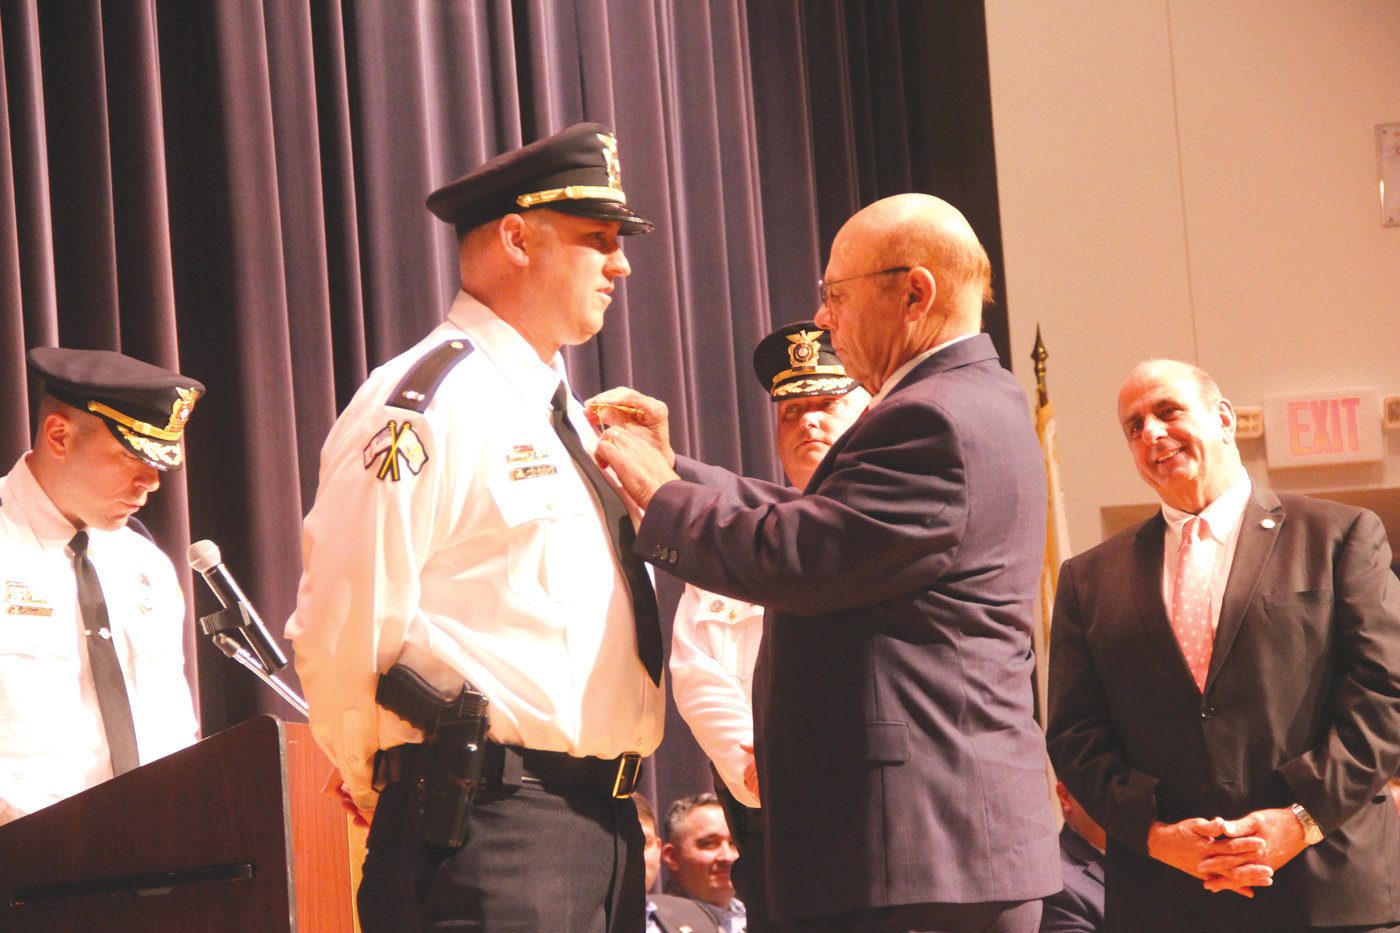 FATHER TO SON: Former Warwick Police Chief William DeFeo pins the lieutenant badge on his son, William Jr.